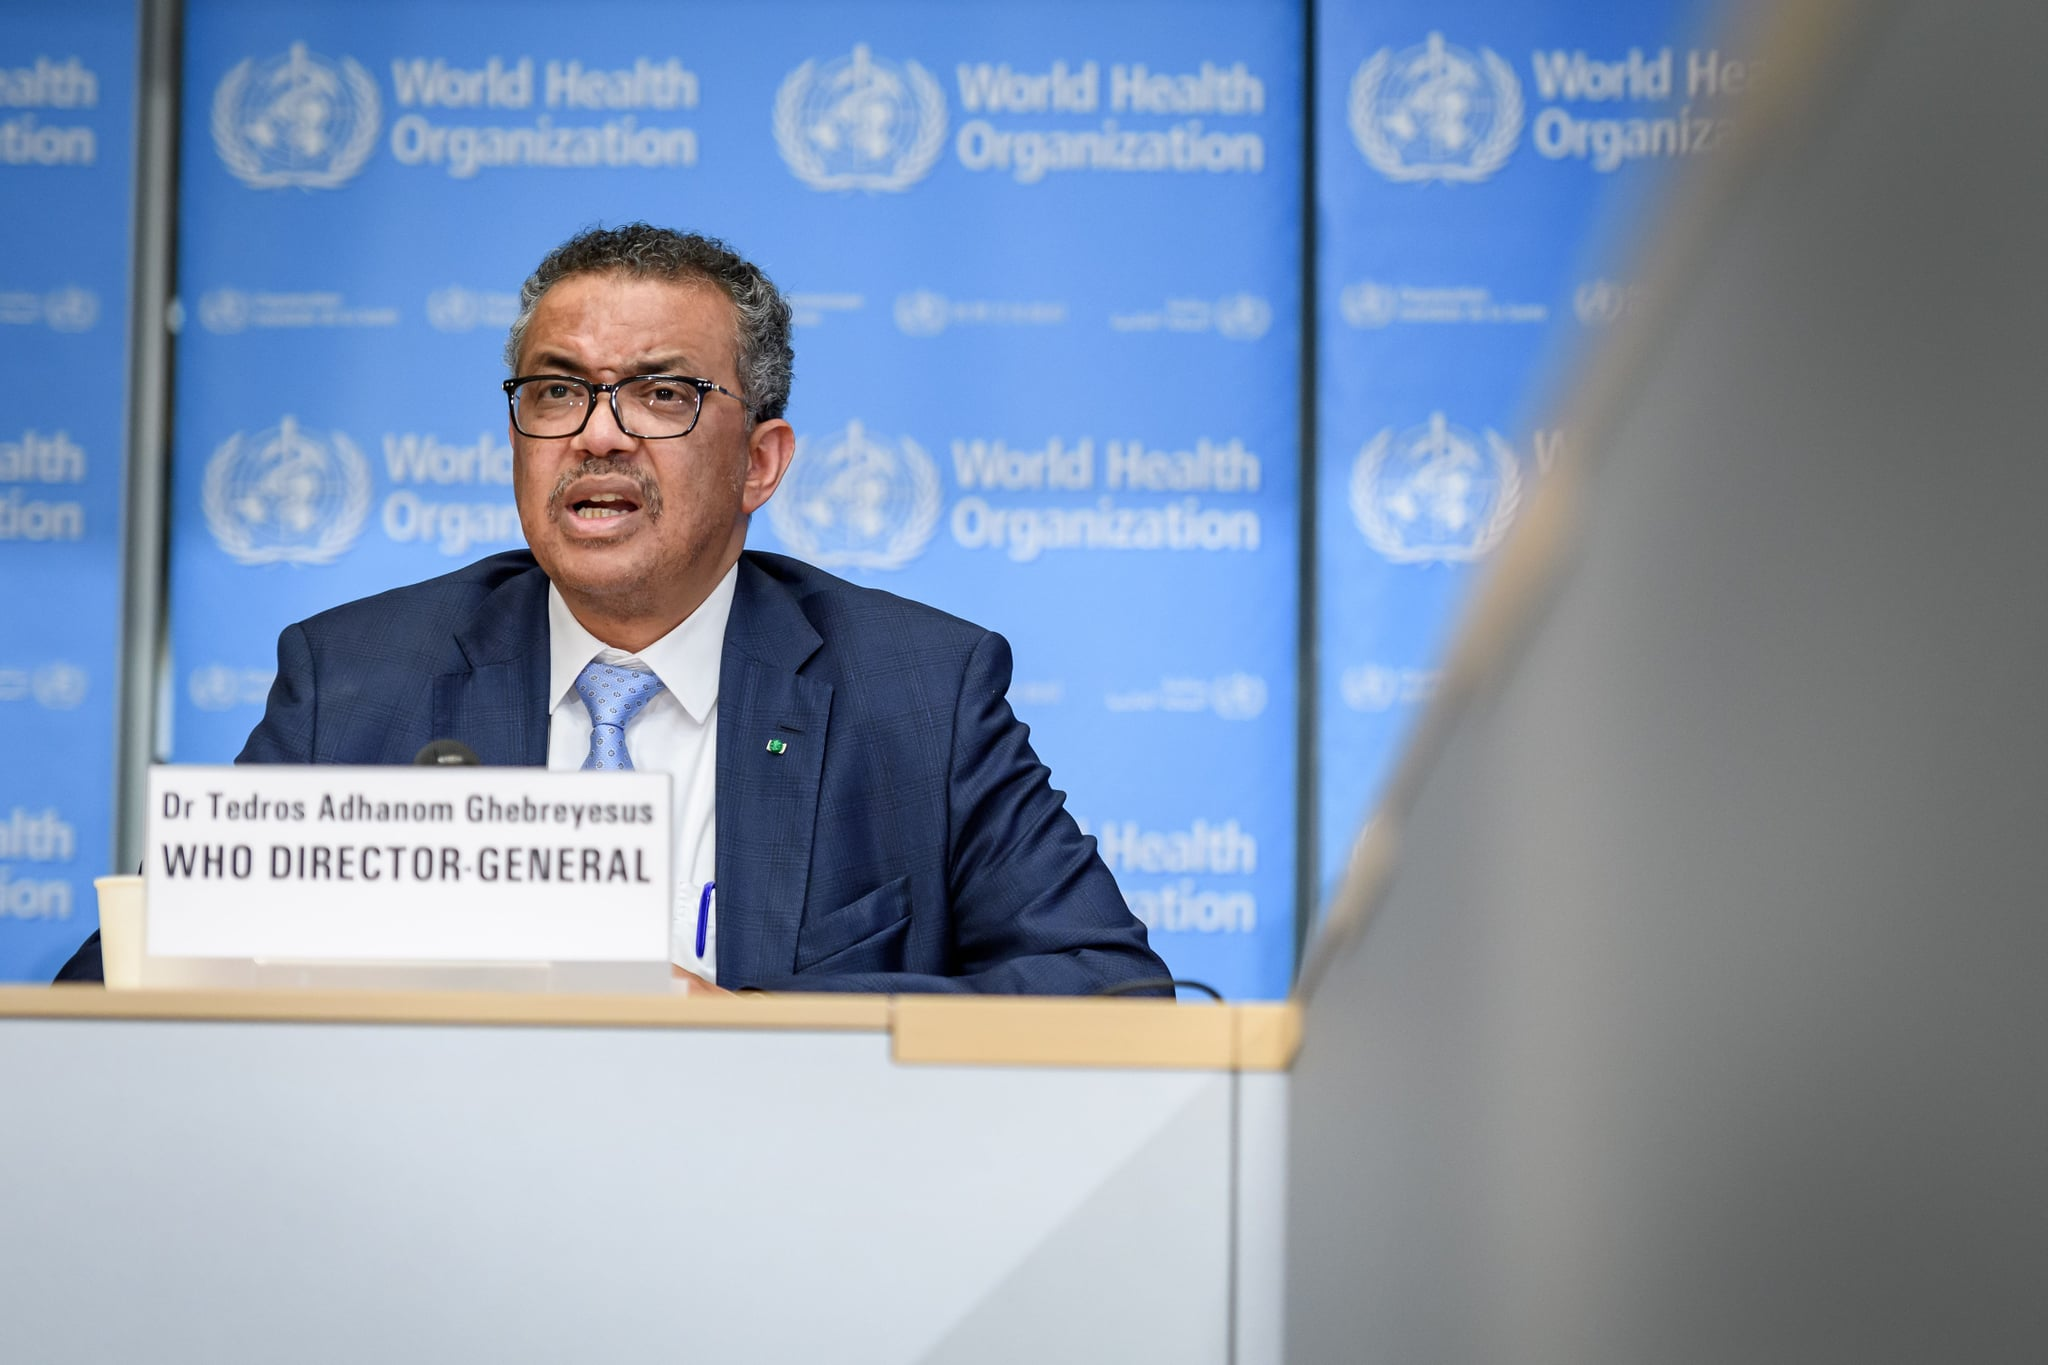 World Health Organization (WHO) Director-General Tedros Adhanom Ghebreyesus speaks during the daily press briefing on the new coronavirus dubbed COVID-19, at the WHO headquaters on March 2, 2020 in Geneva. - The World Health Organization said that the number of new coronavirus cases registered in the past day in China was far lower than in the rest of the world. (Photo by FABRICE COFFRINI / AFP) (Photo by FABRICE COFFRINI/AFP via Getty Images)